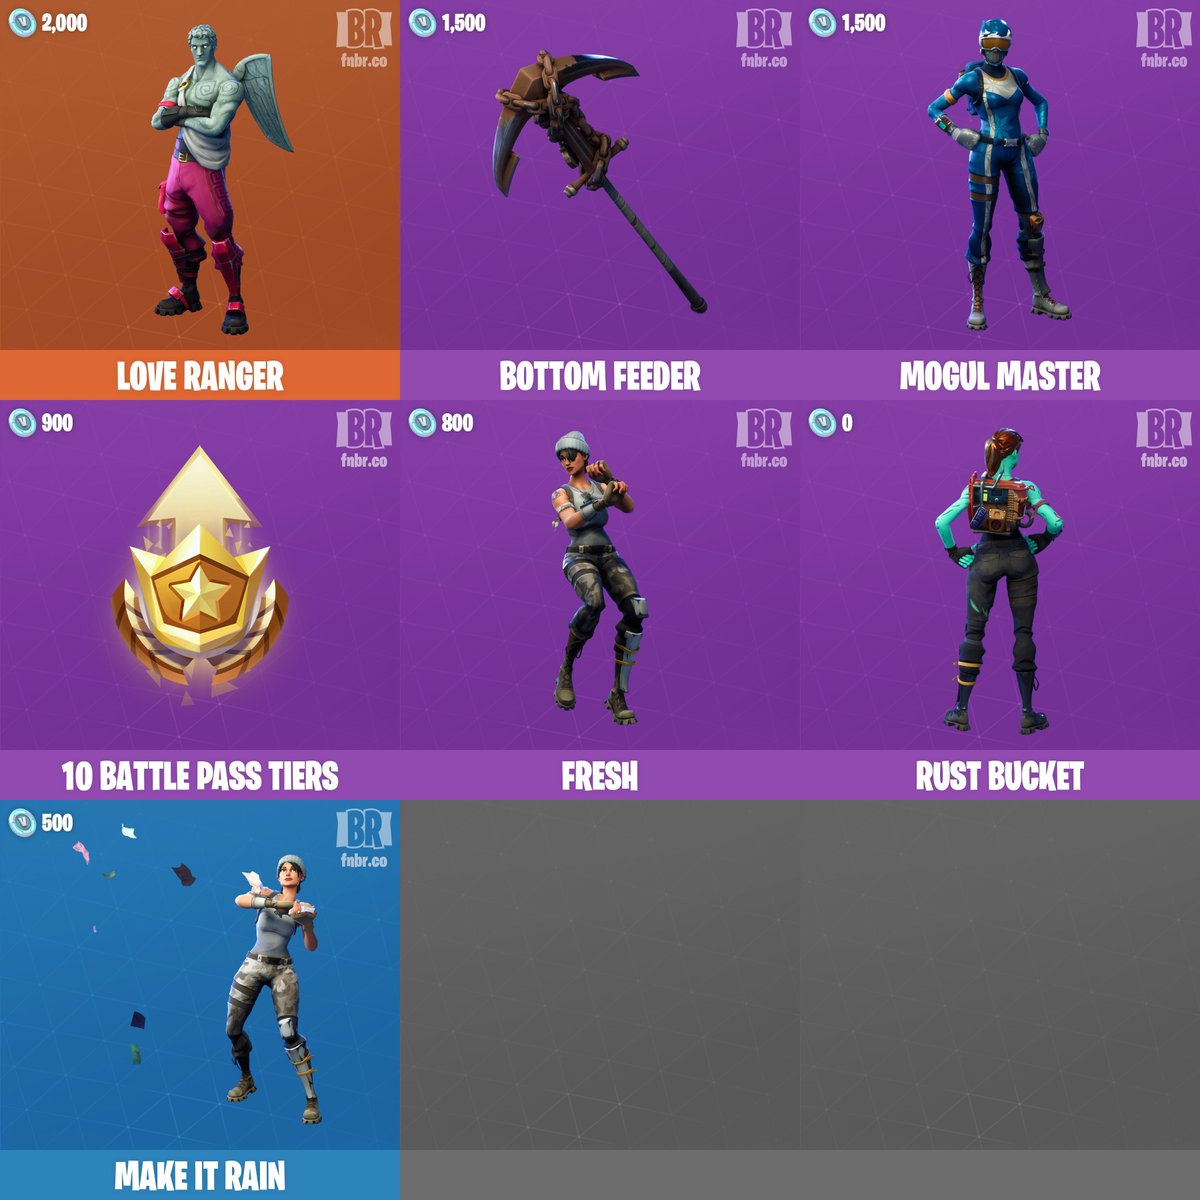 looks like the item shop was changed overnight to include items players may have missed due to downtime here are the new daily fortnite battle royale - fortnite item shop unblocked